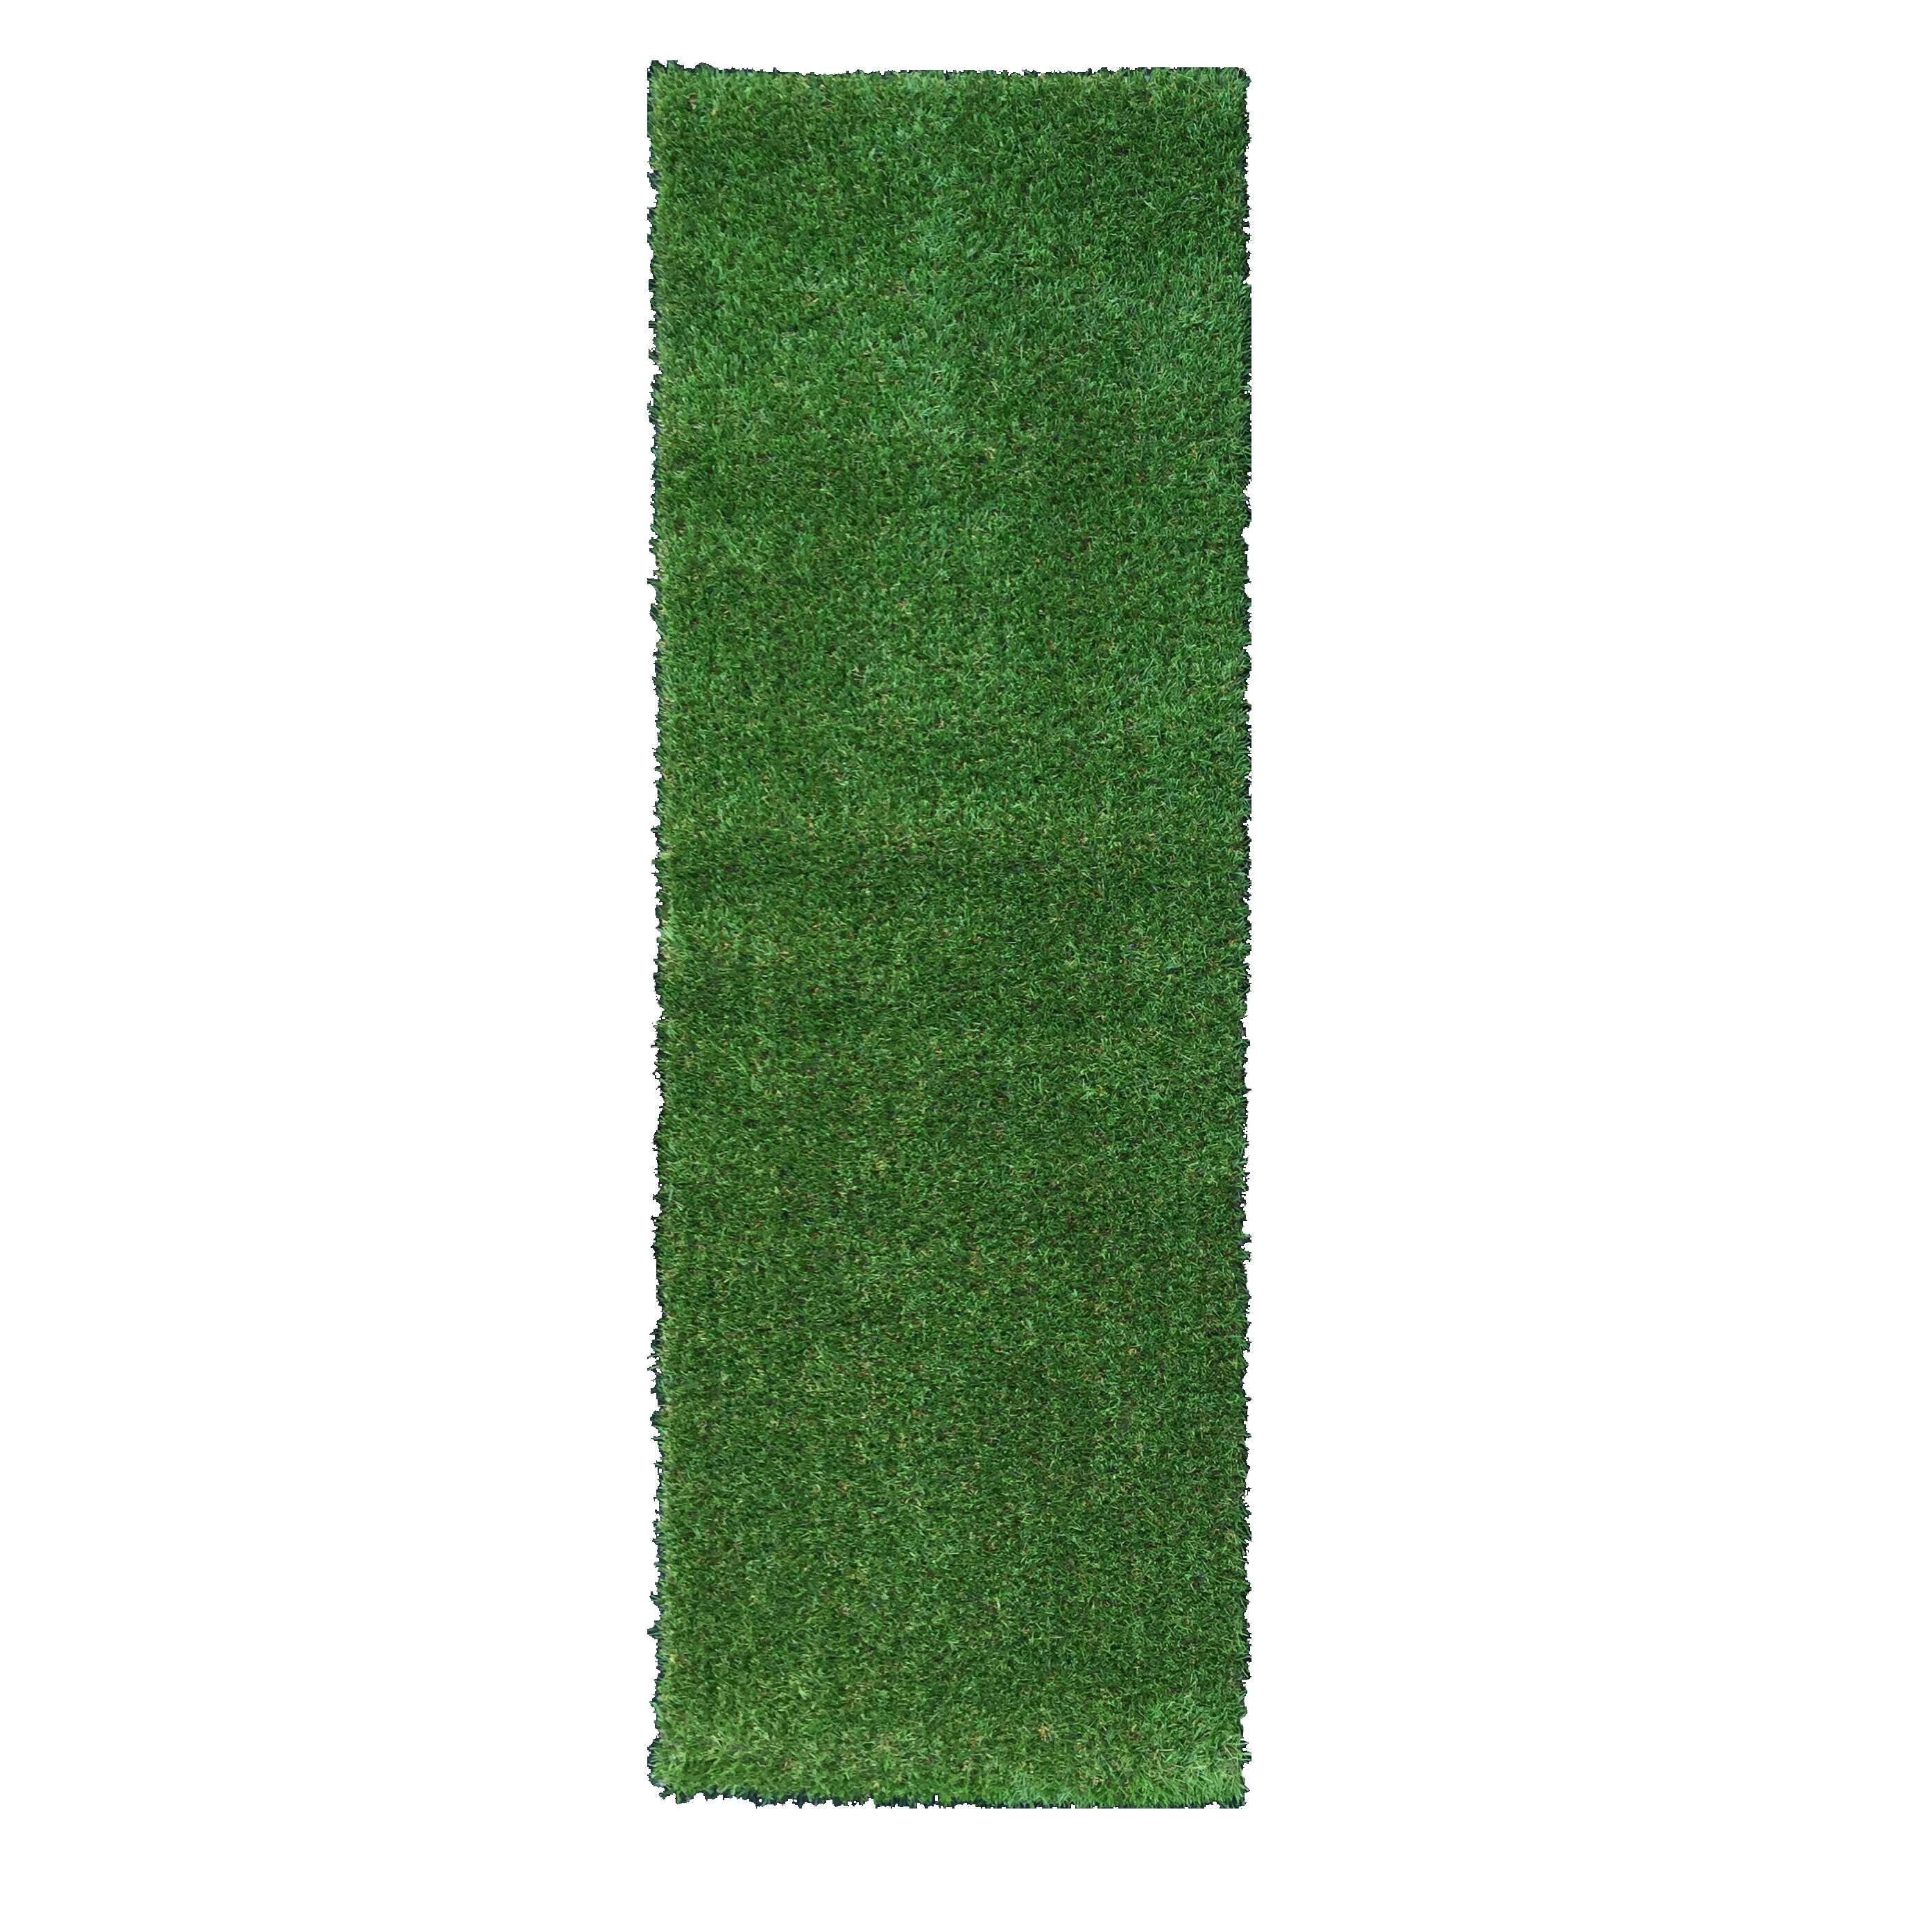 Lowe's has both indoor and outdoor carpeting options, included the top-reviewed Surfaces Almond Outdoor Carpet. For more help in choosing carpeting, see our Choosing Flooring - Carpet article to compare types of carpet and for tips and advice on finding the best carpet for your home!